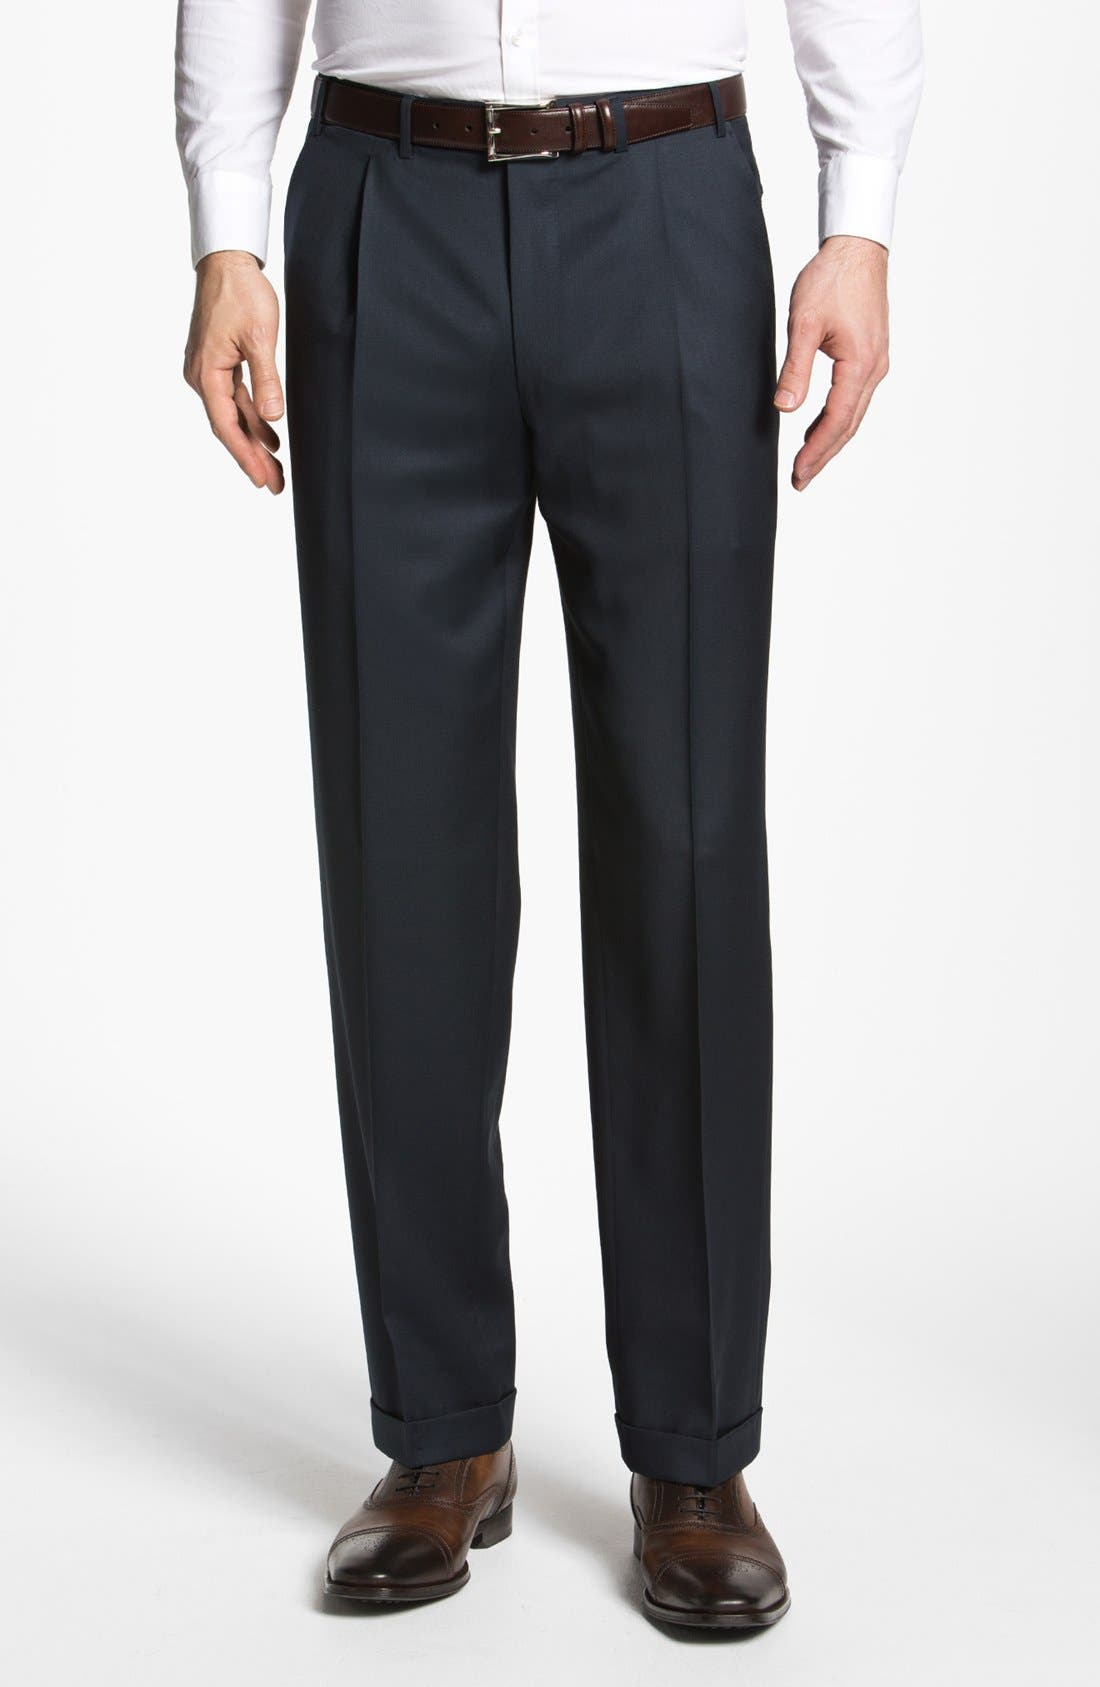 Shop Men's Pants: Dress Pants, Chinos, Khakis, Pleated pants and more at Macy's! Macy's Presents: The Edit - A curated mix of fashion and inspiration Check It Out Free Shipping with $75 purchase + .